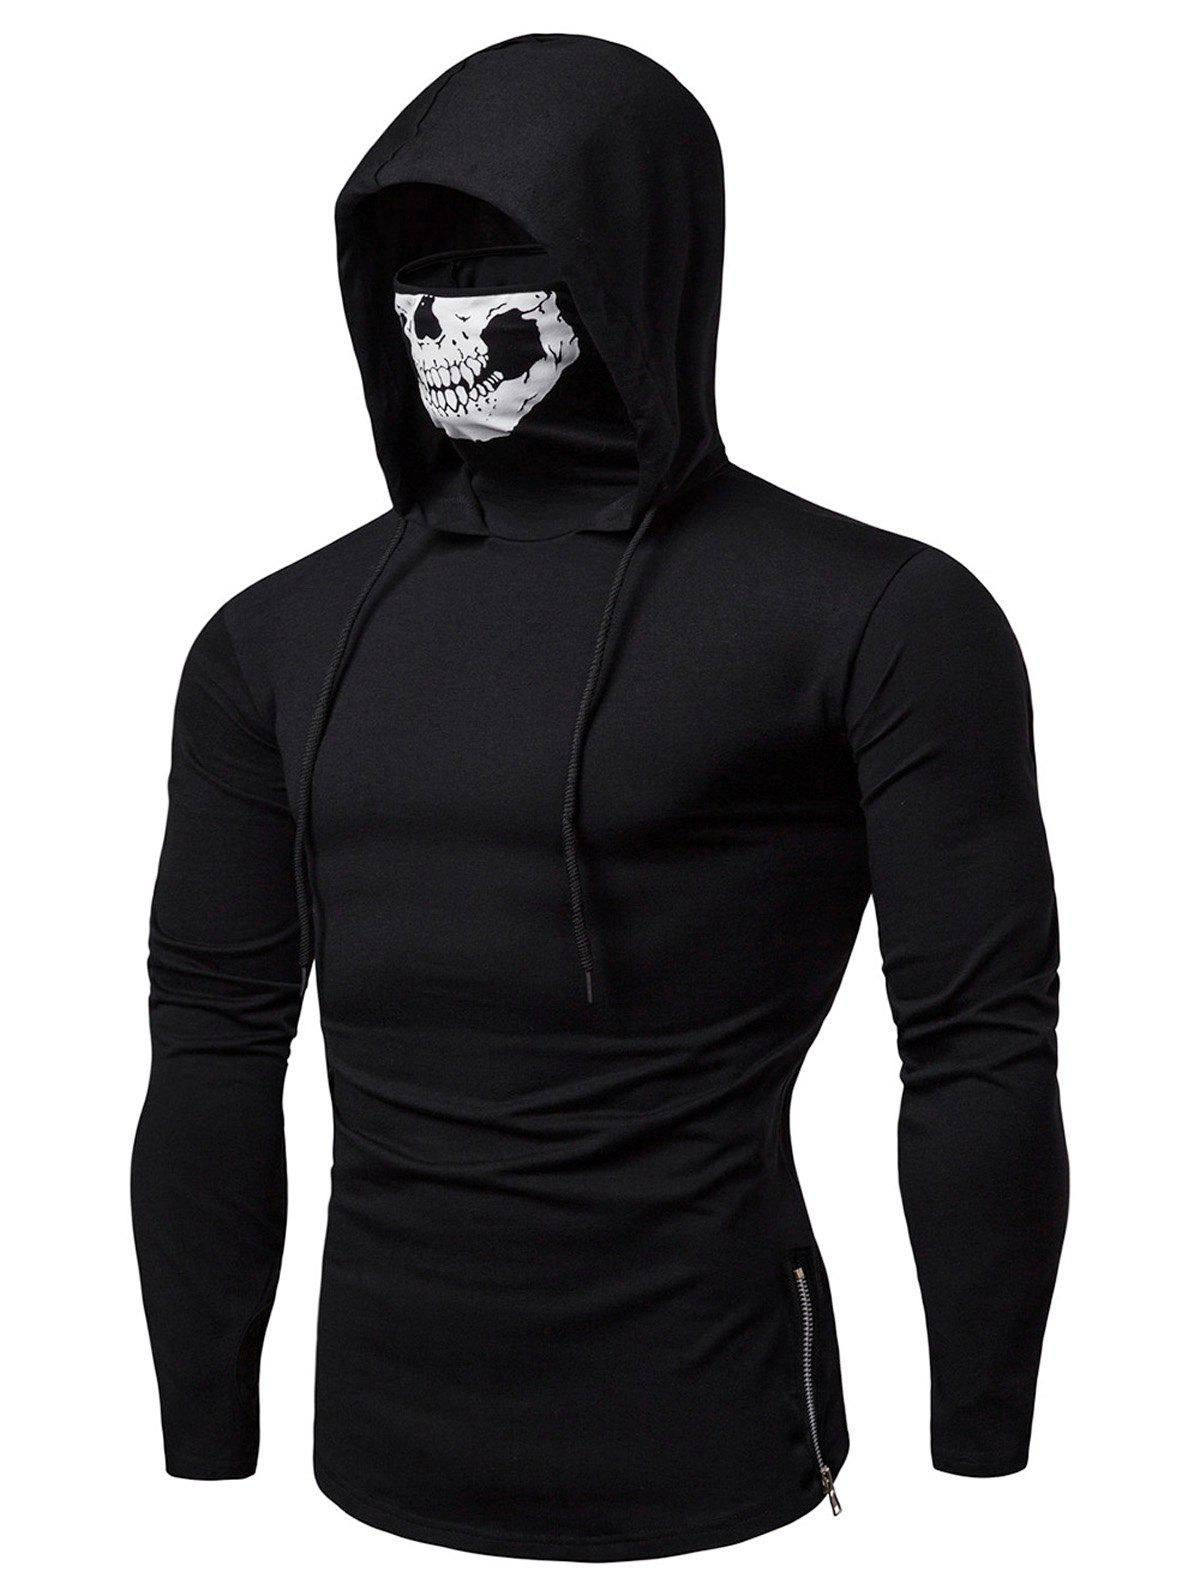 Buy Skull Mask Drawstring Zip Hem Hooded T Shirt